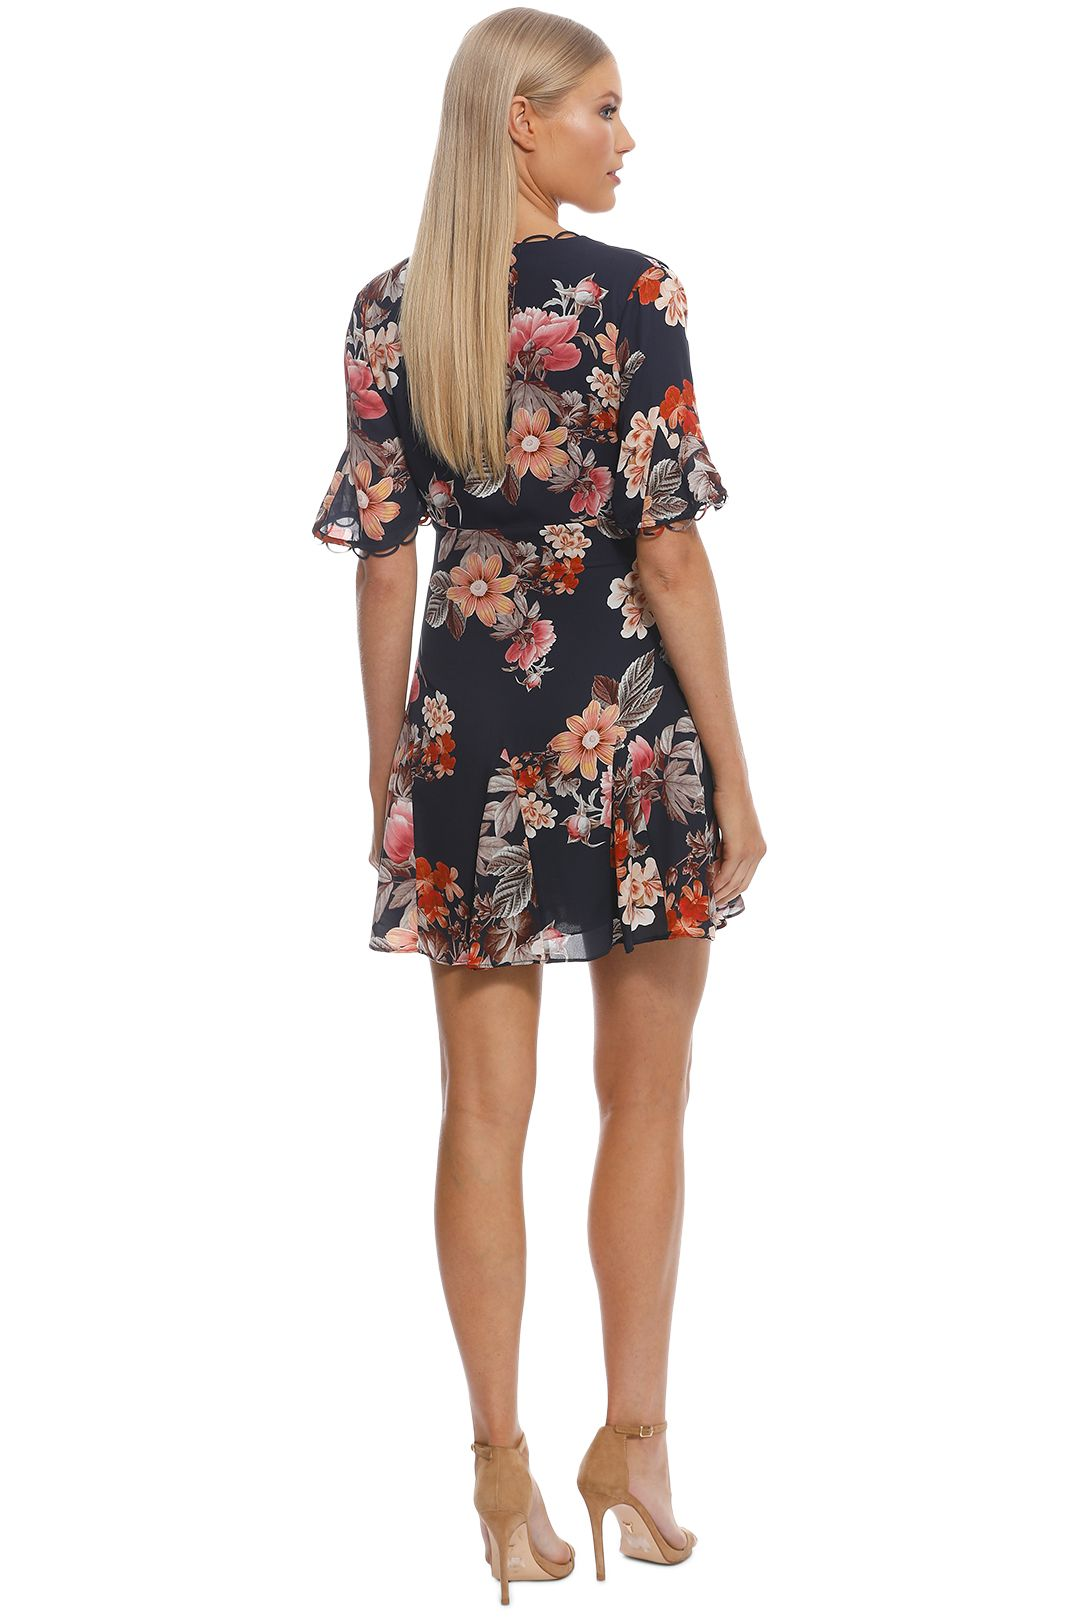 Nicholas The Label - Navy Rust Floral Godet Button Front Dress - Navy - Back